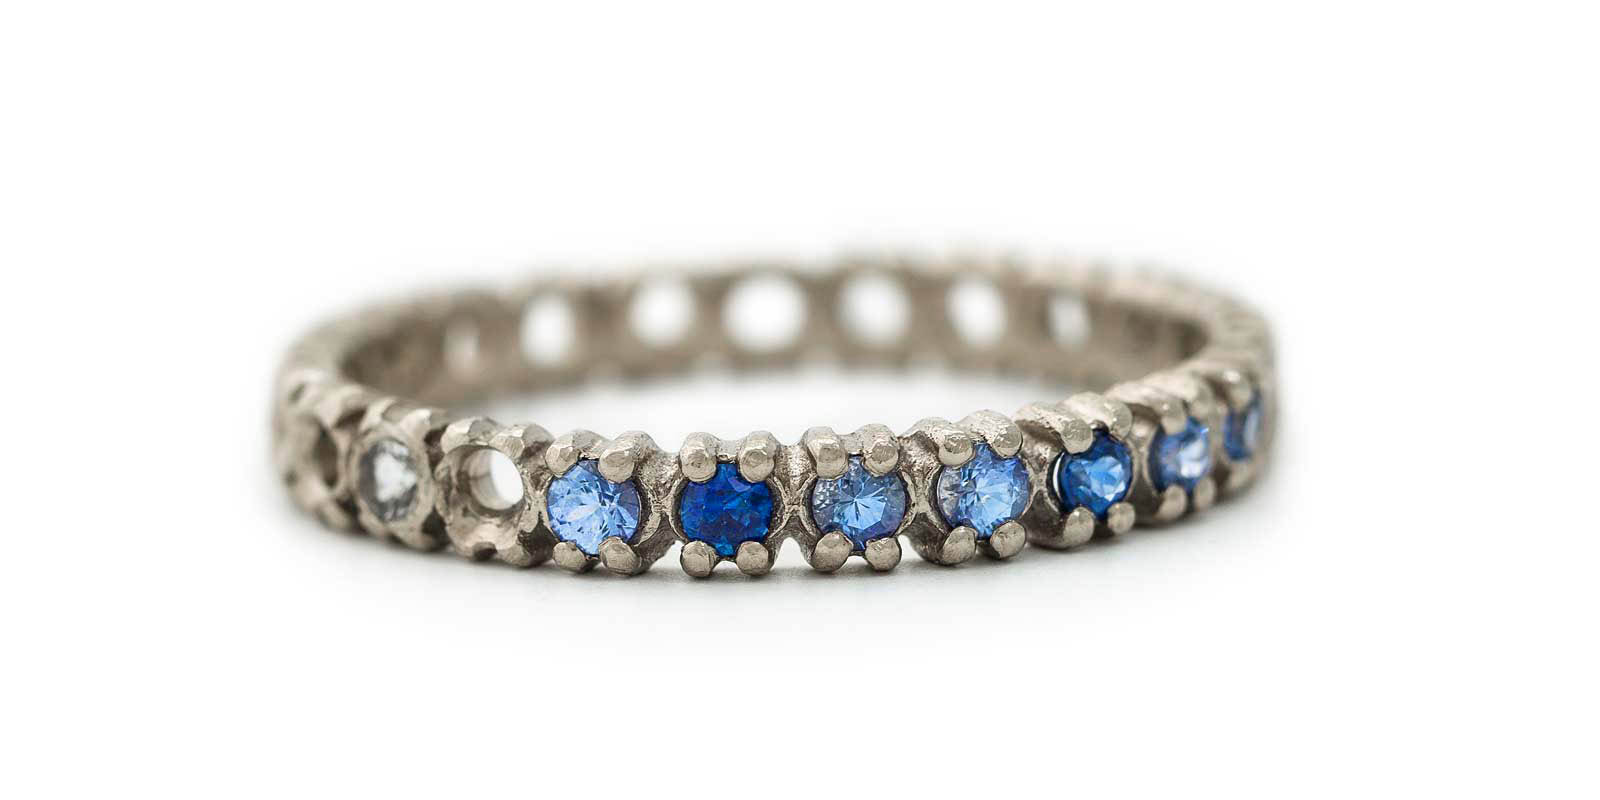 Half Eternity Ring – Blue Sapphire and White Diamond, 18ct White Gold